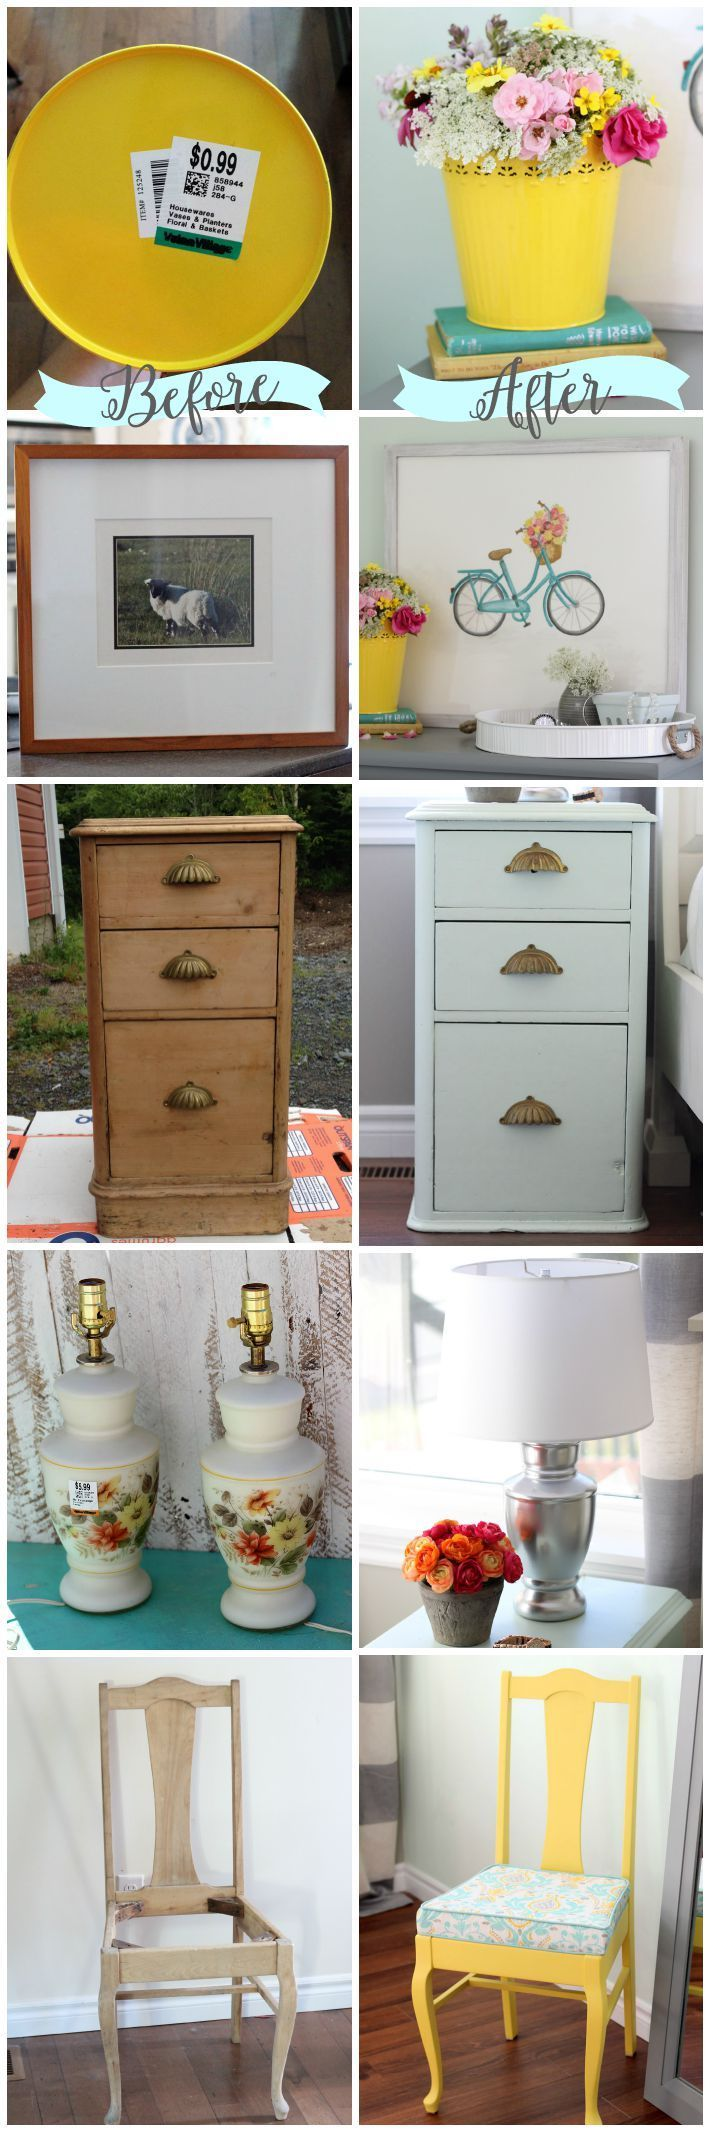 Incredible diy ideas to change a thrift store find to awesome home decor!